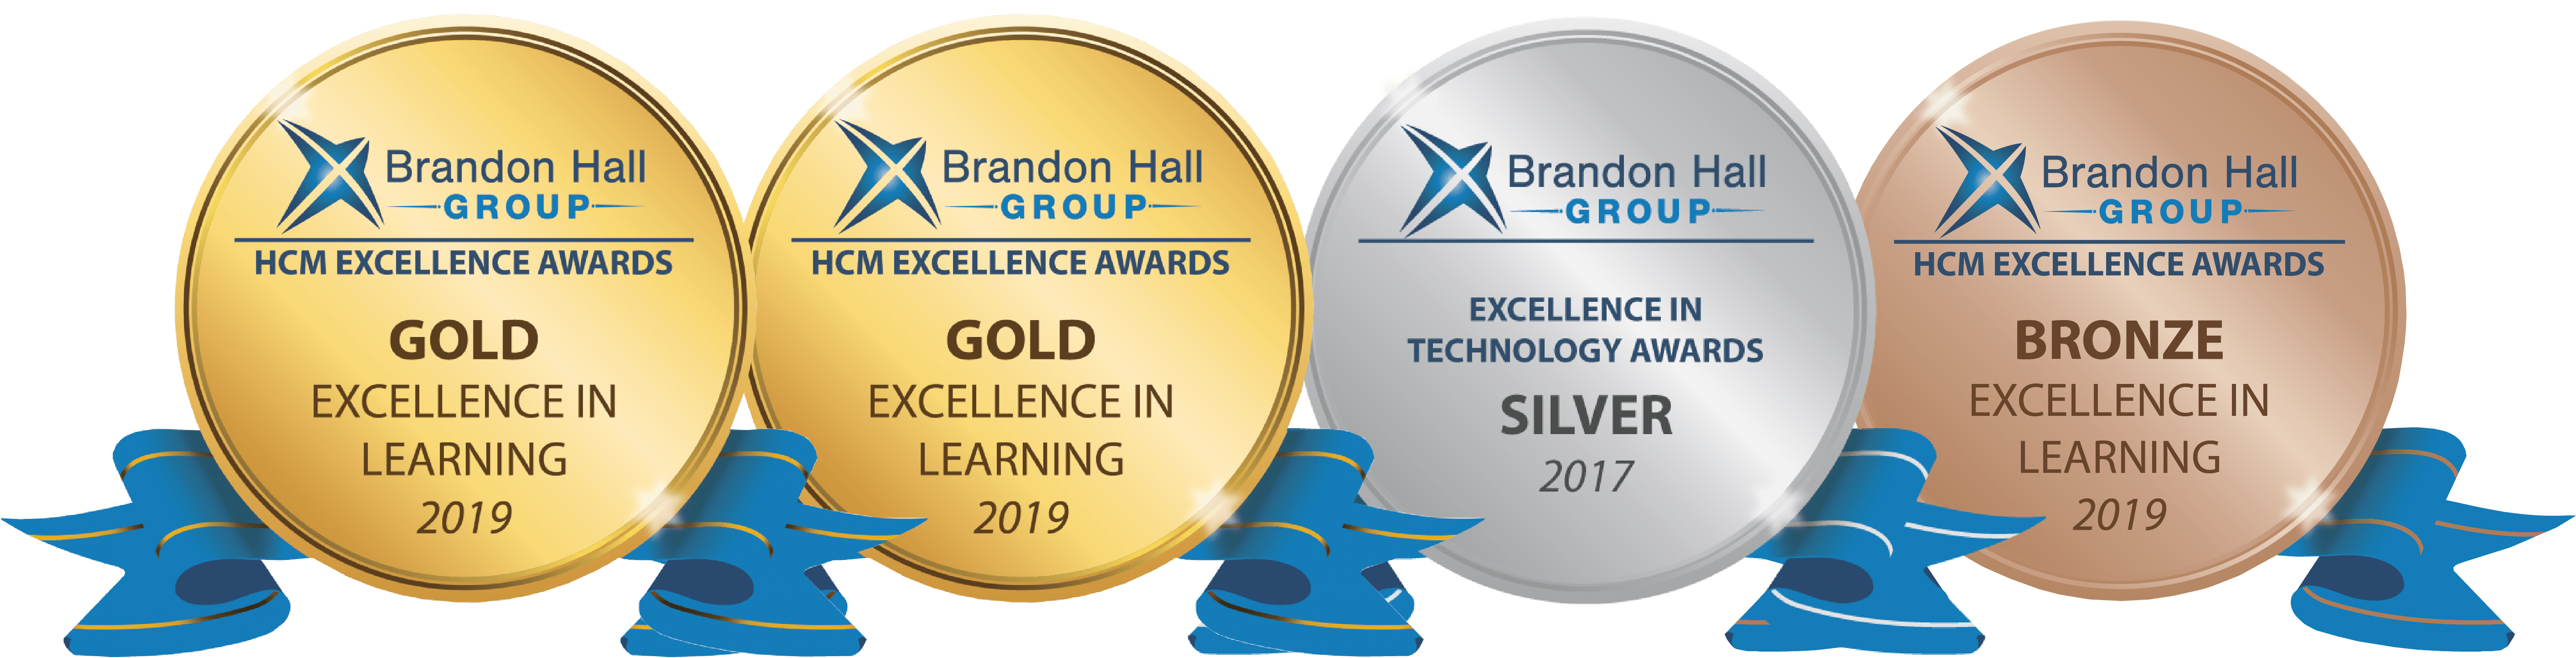 Winner, Winner! 3 Brandon Hall Excellence Awards